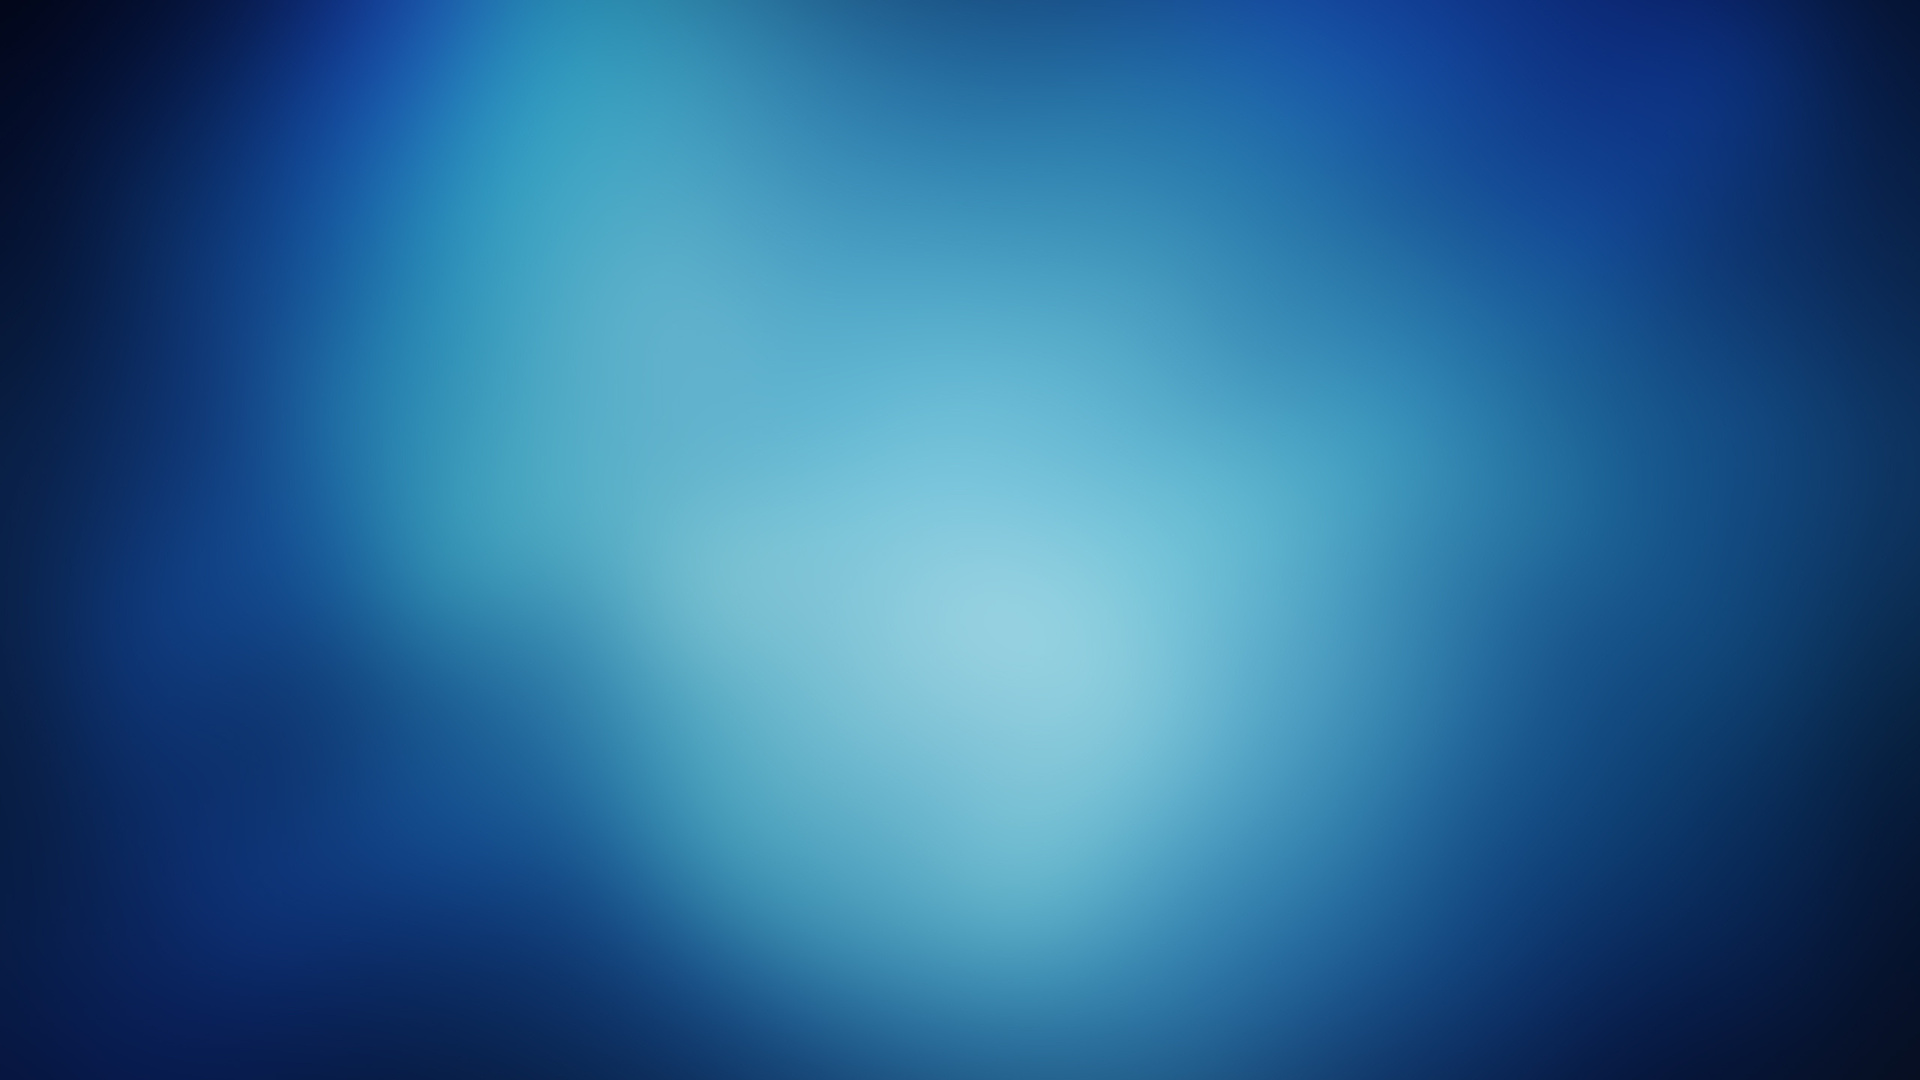 30+ Hd Blue Wallpapersbackgrounds For Free Download